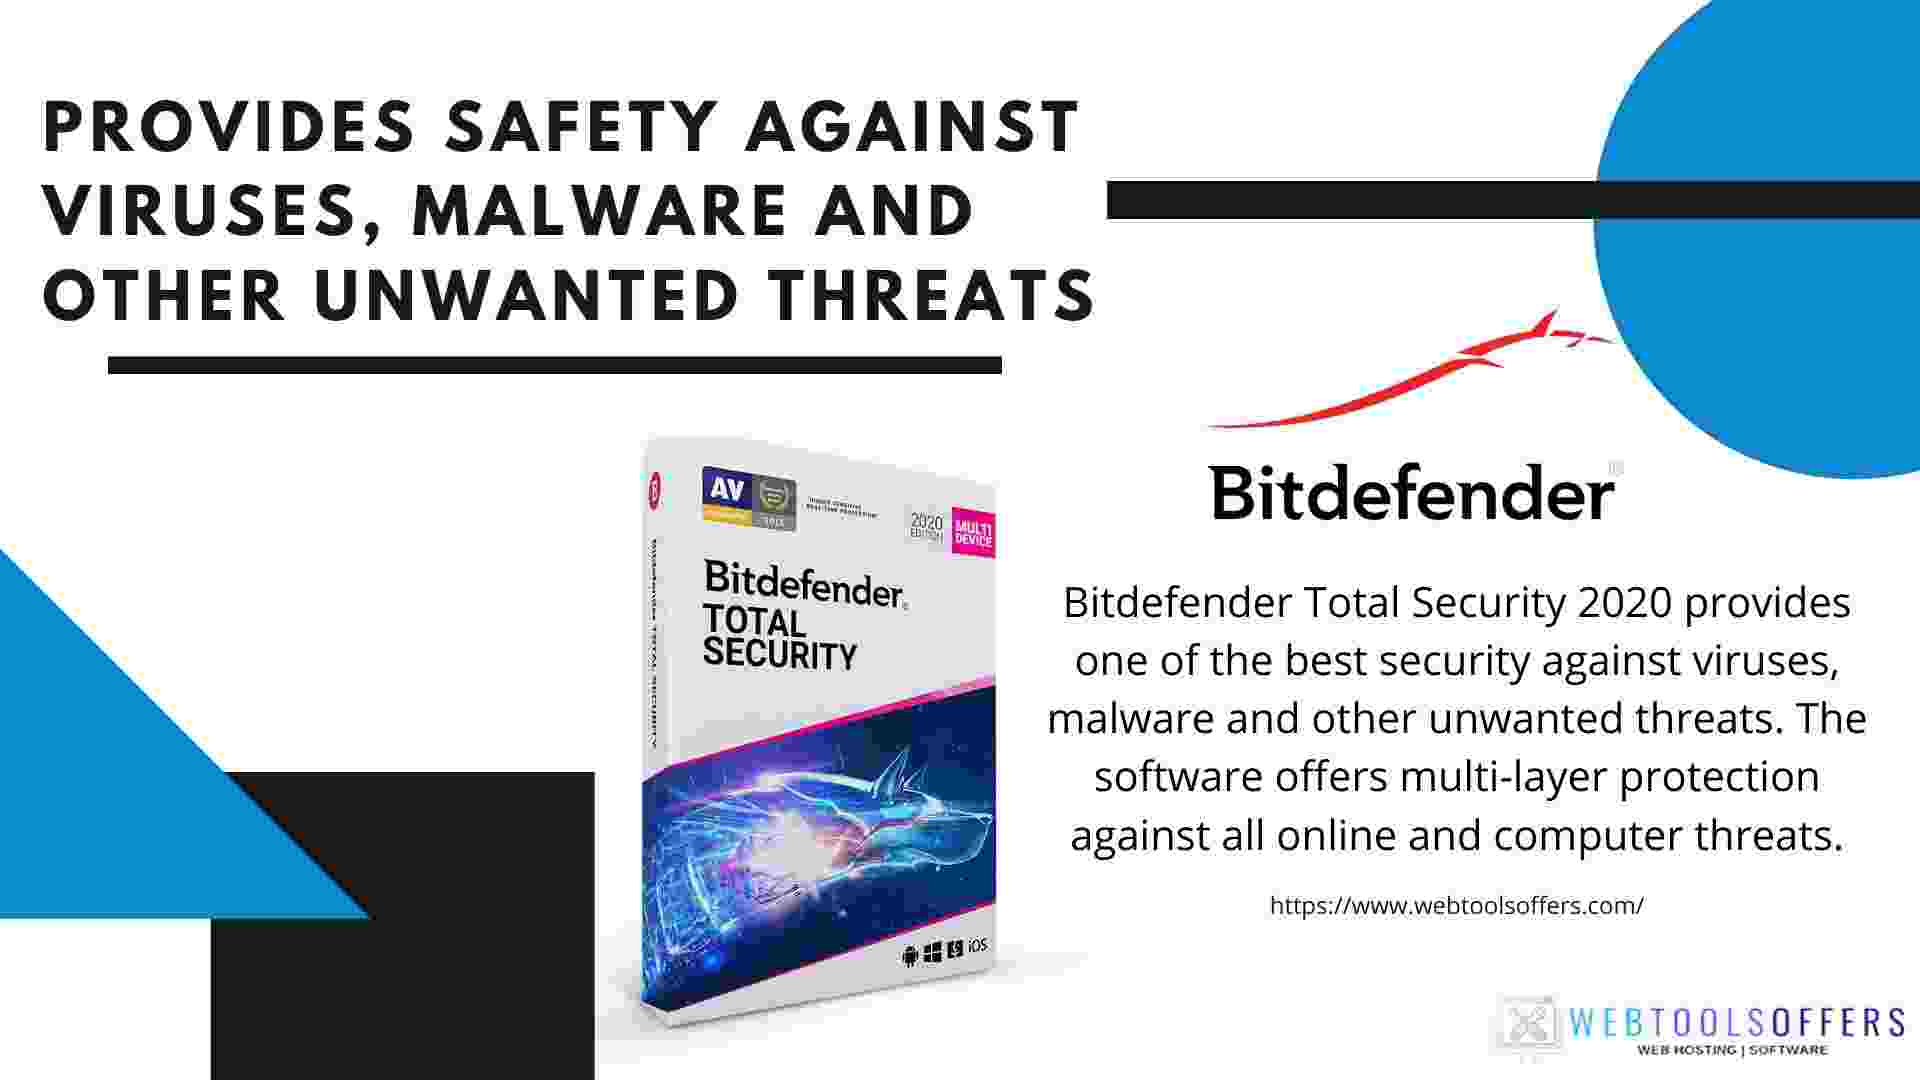 Security against viruses and malware